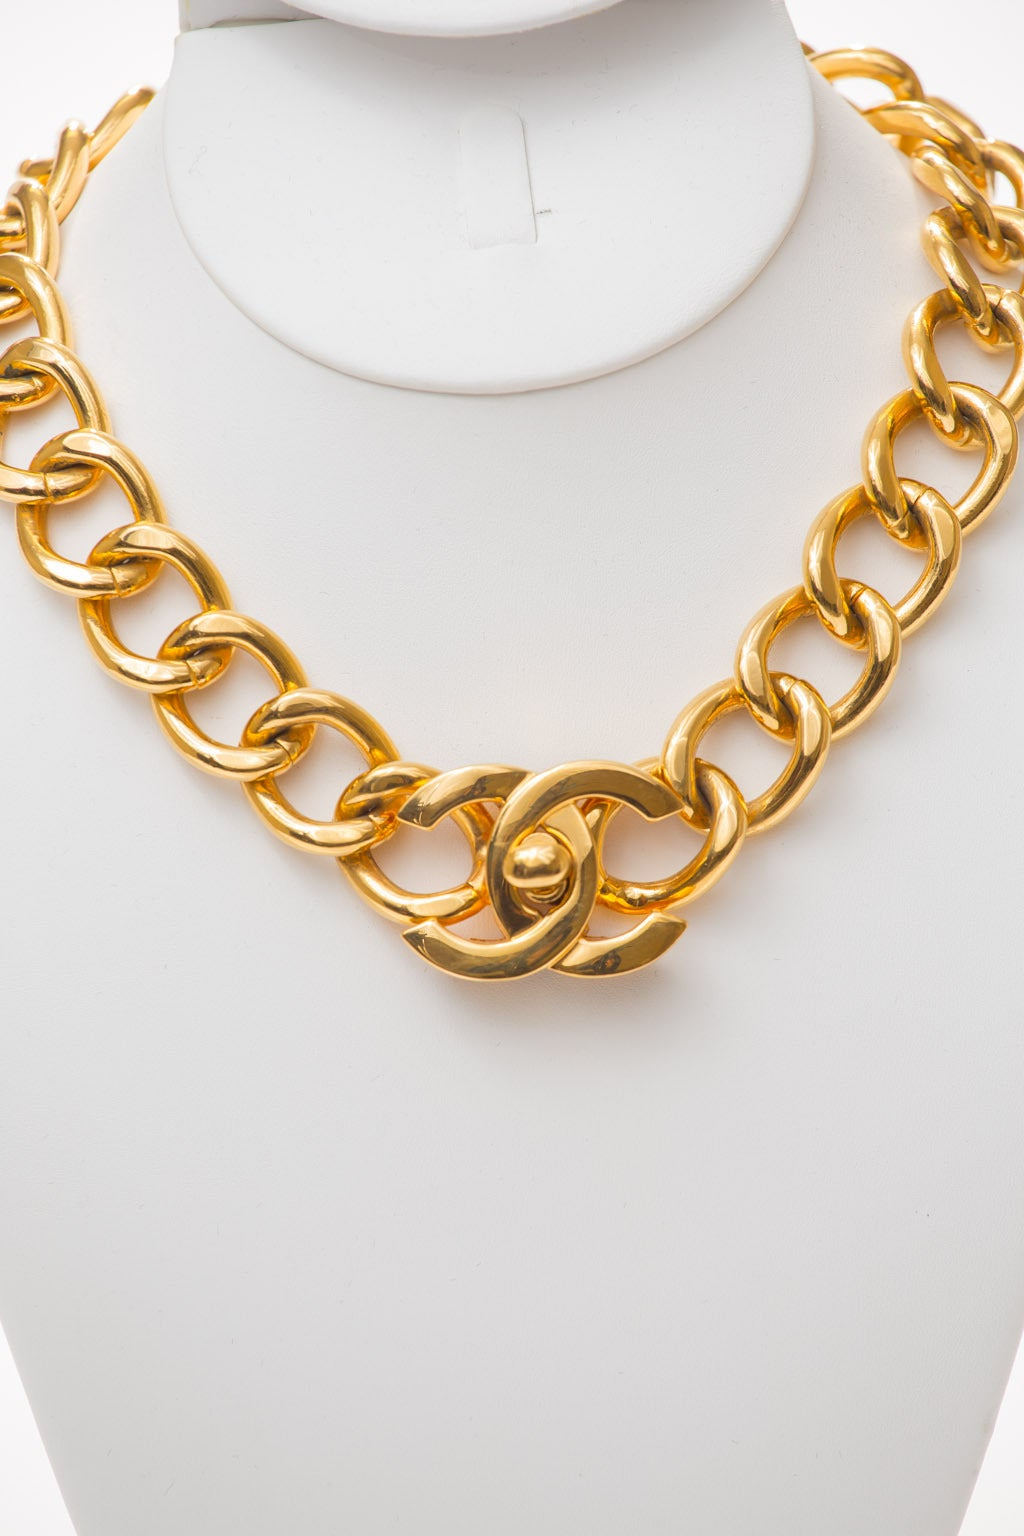 Chanel Choker Necklace 2